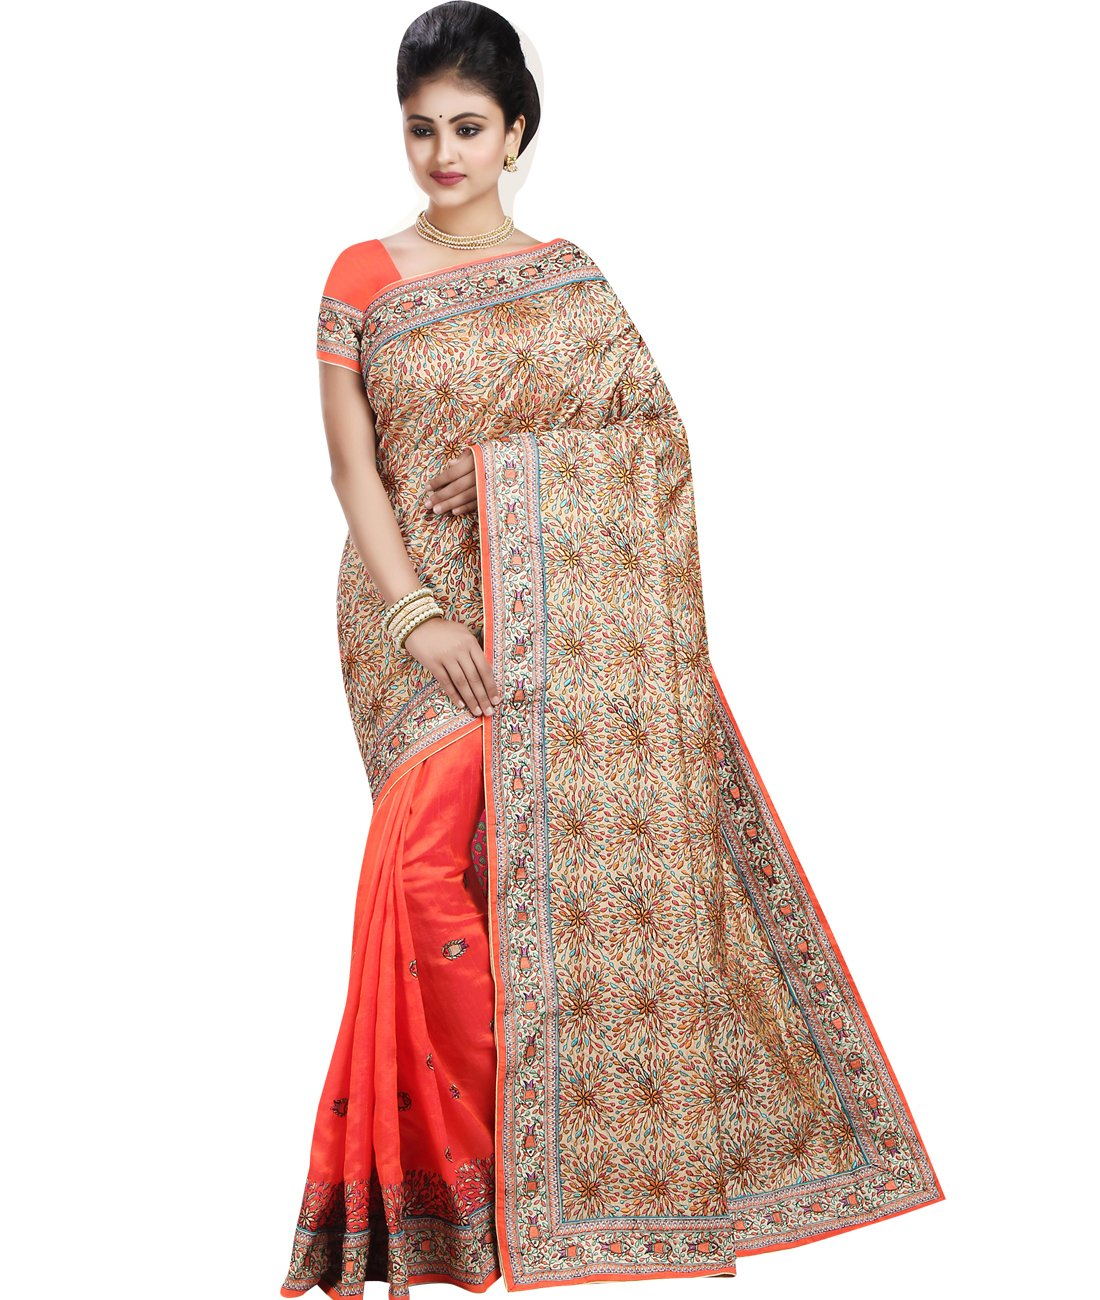 Maahir Garments Exclusive Indian Ethnicwear katha-Stitched Art Banglory Silk Beige and Dark Orange coloured Saree